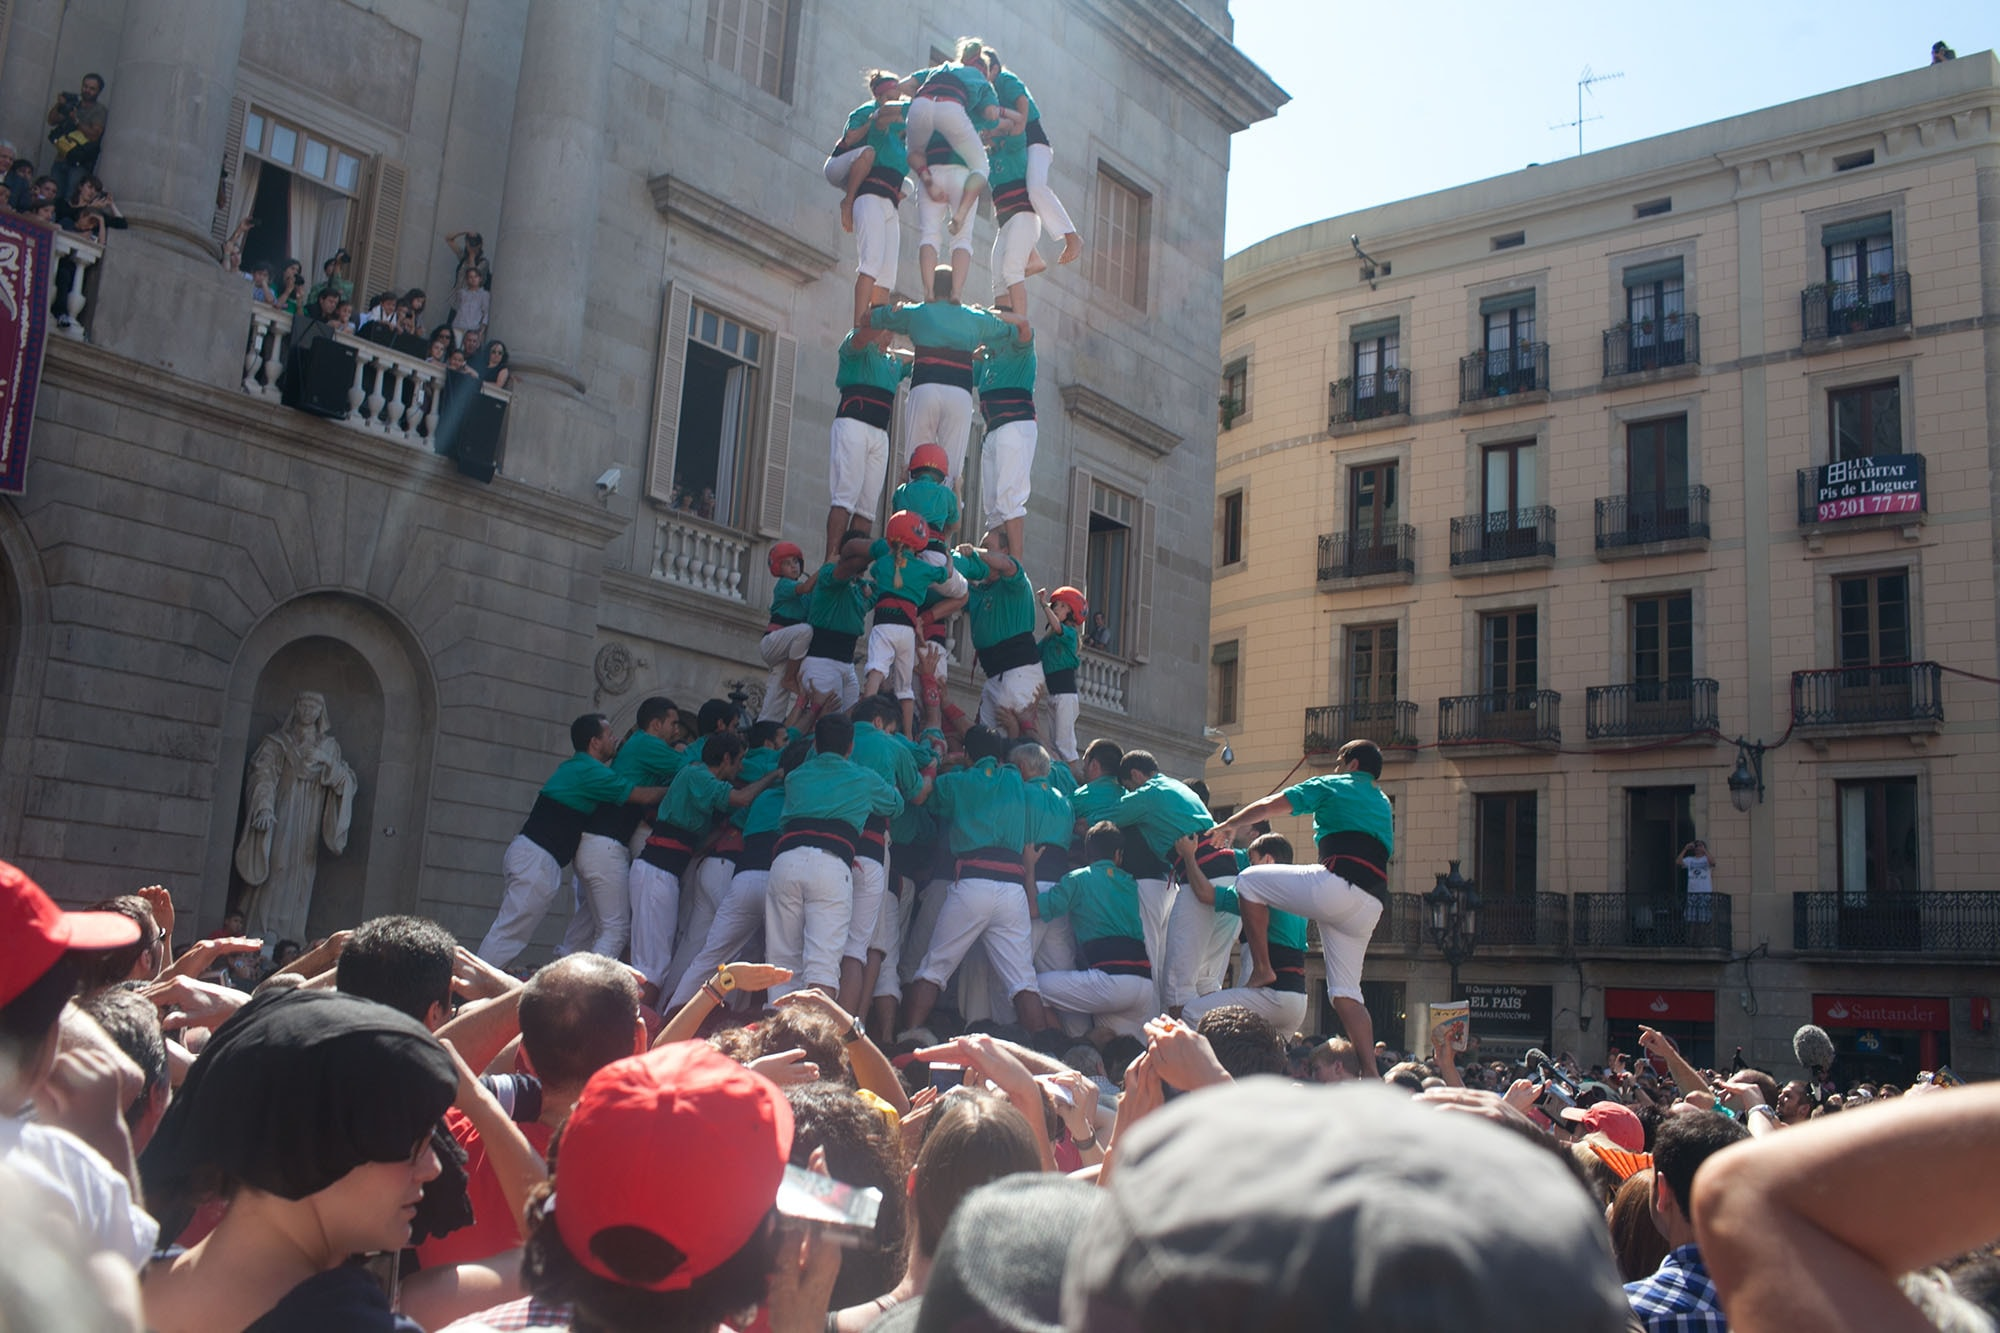 Castells Day - human tower building - at La Mercè Festival in Barcelona, Spain